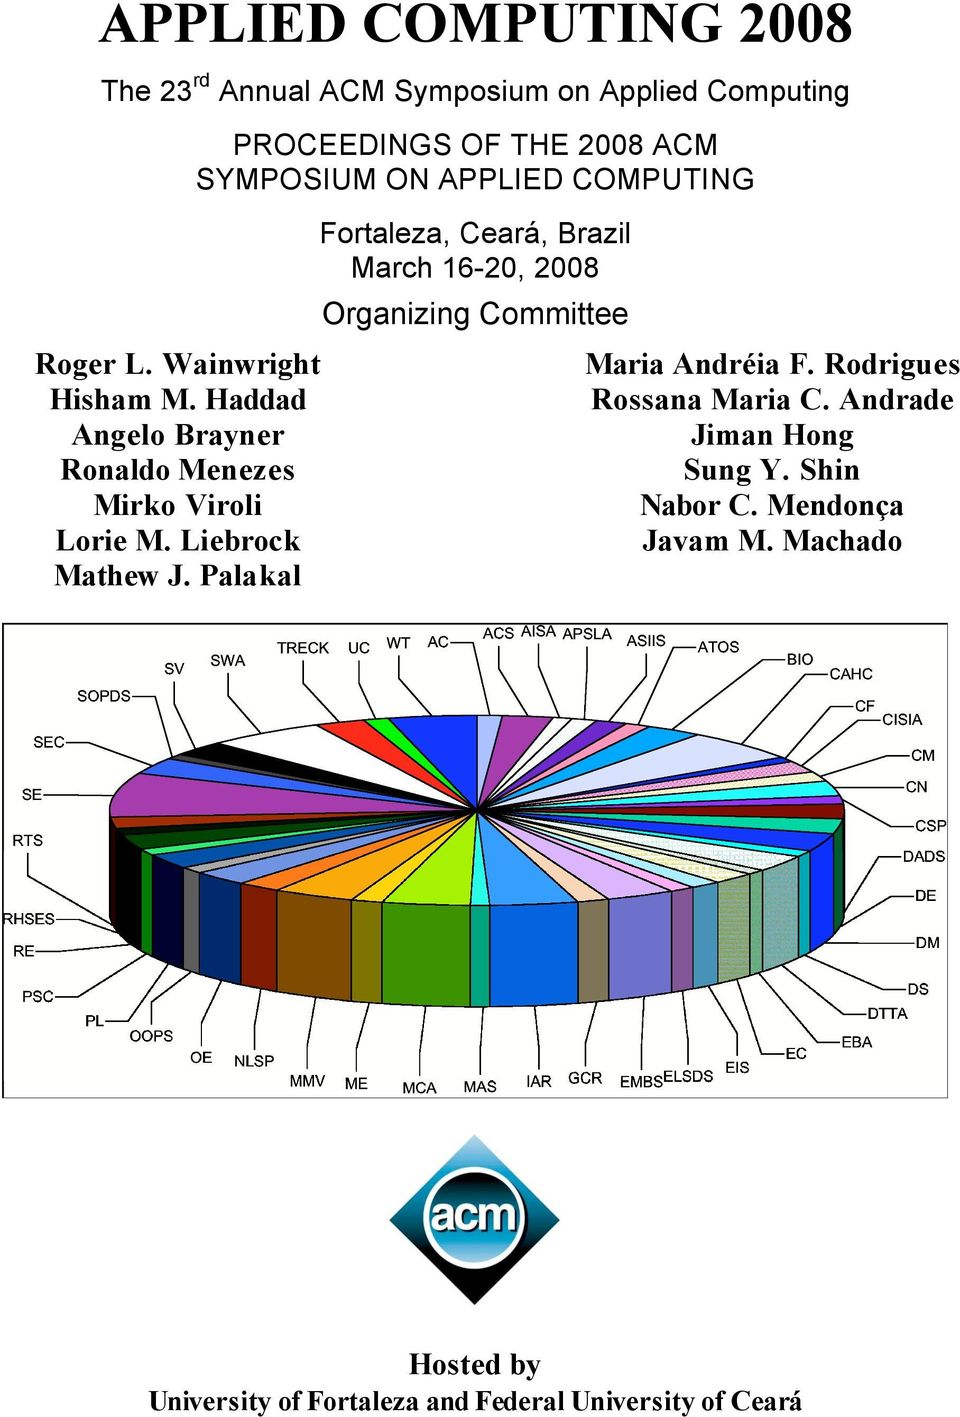 Palakal PROCEEDINGS OF THE 2008 ACM SYMPOSIUM ON APPLIED COMPUTING Fortaleza, Ceará, Brazil March 16-20, 2008 Organizing